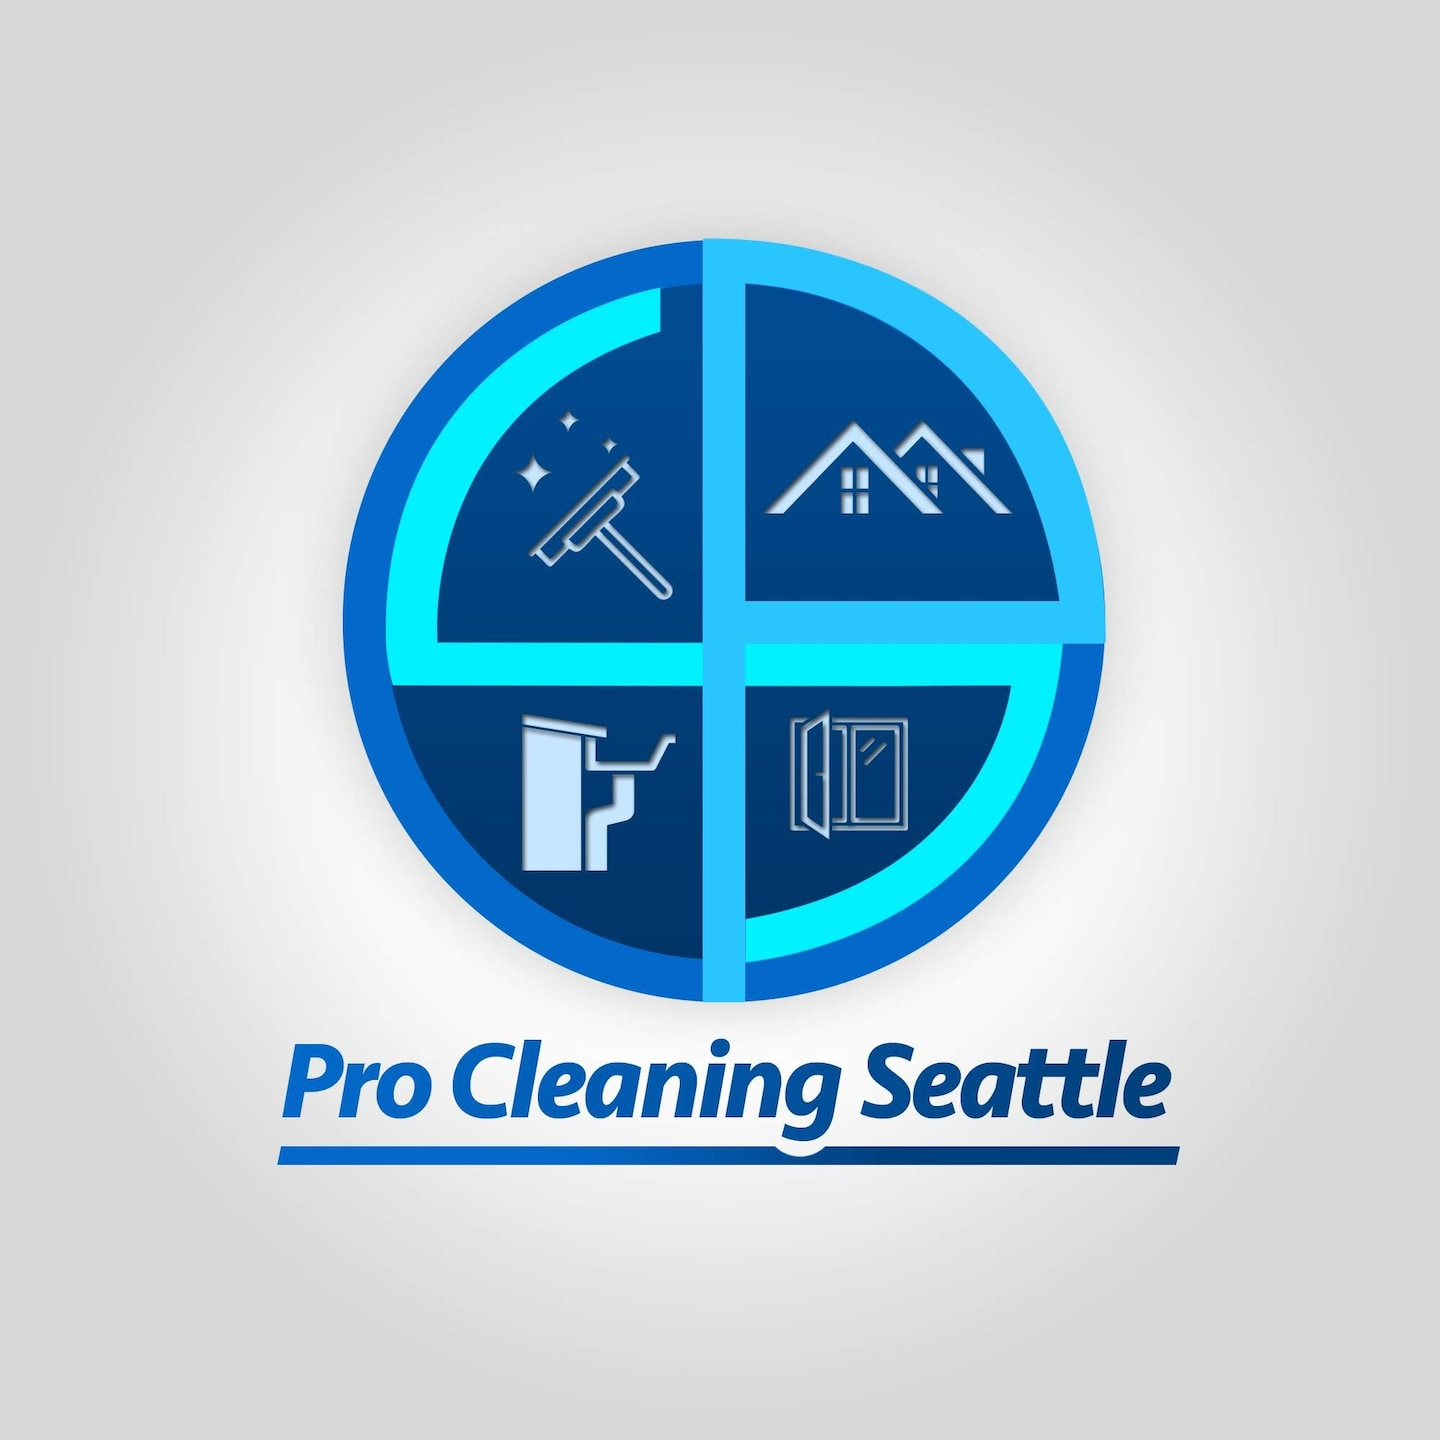 Pro Cleaning Seattle LLC